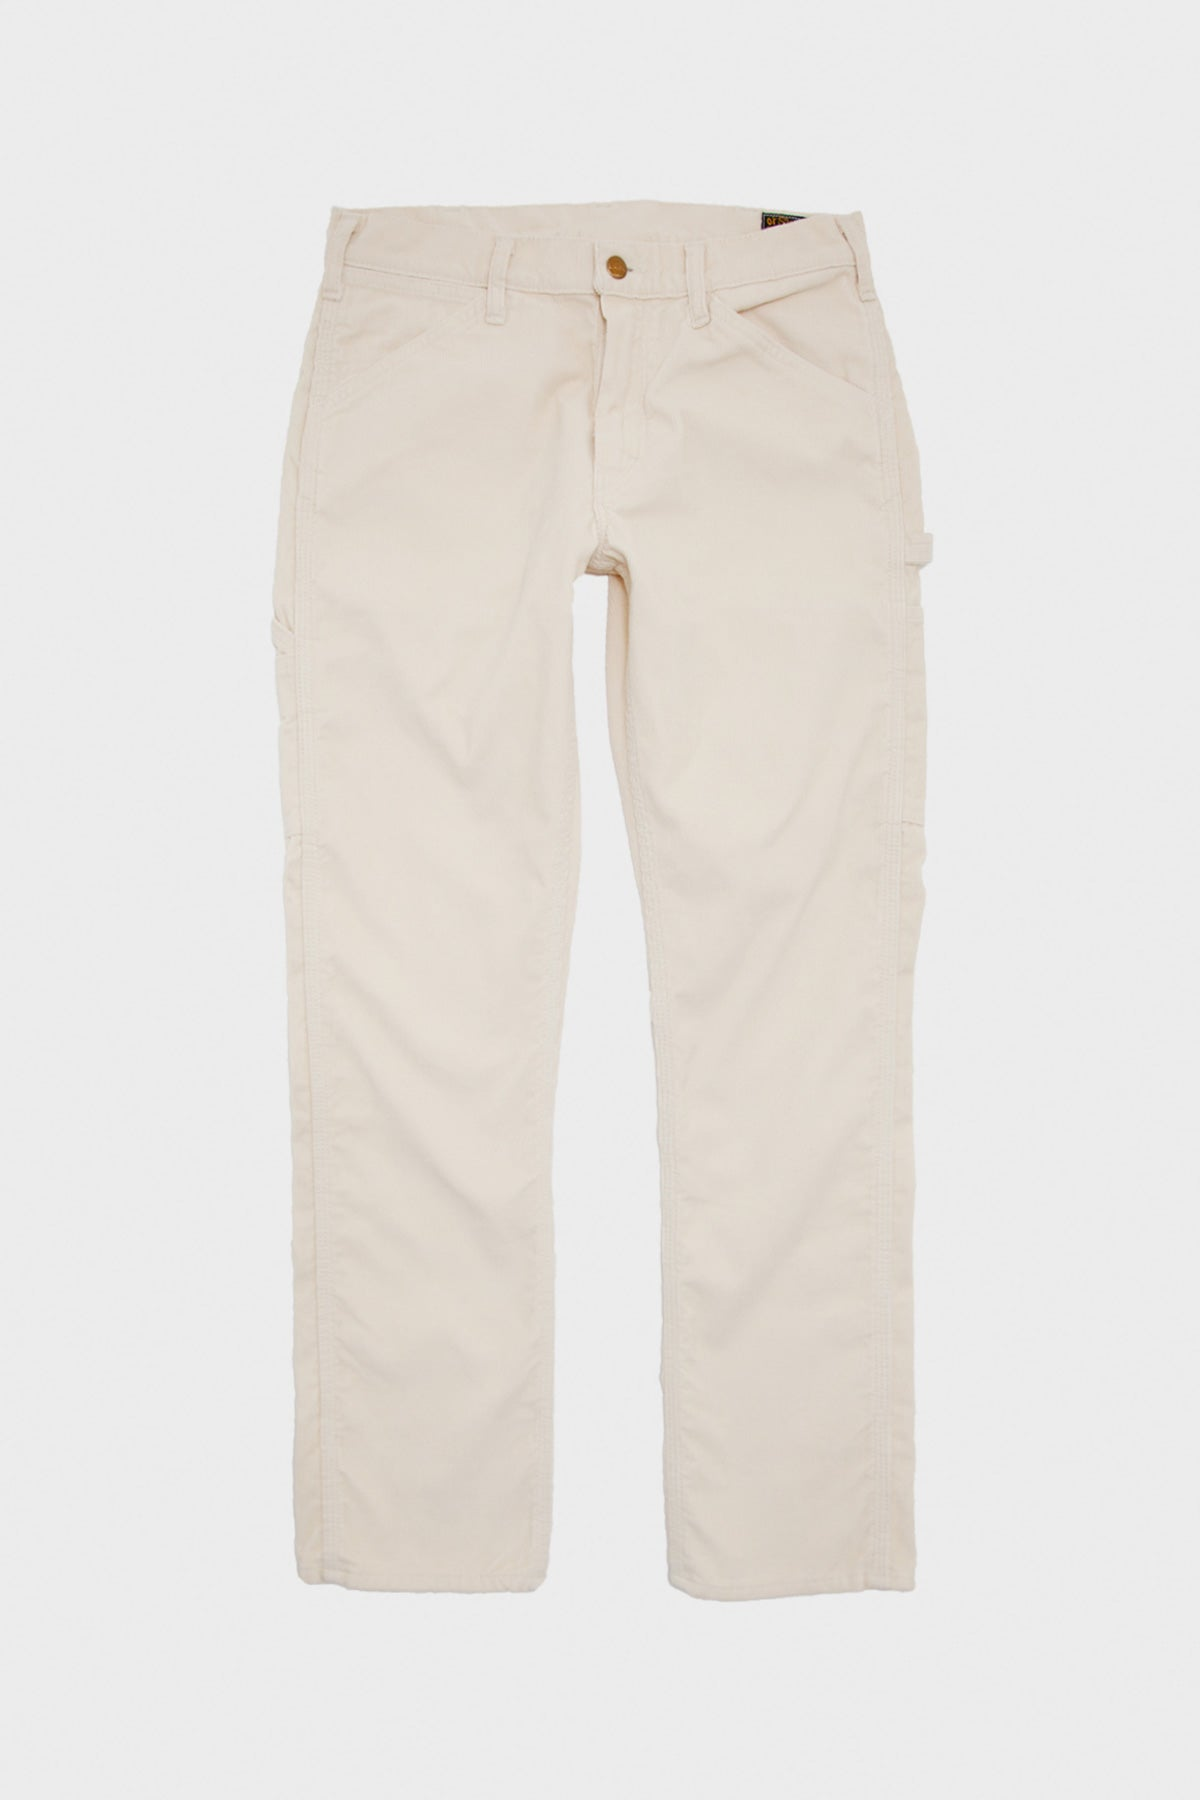 orslow Canoe Club Painter Pants - Ecru Corduroy